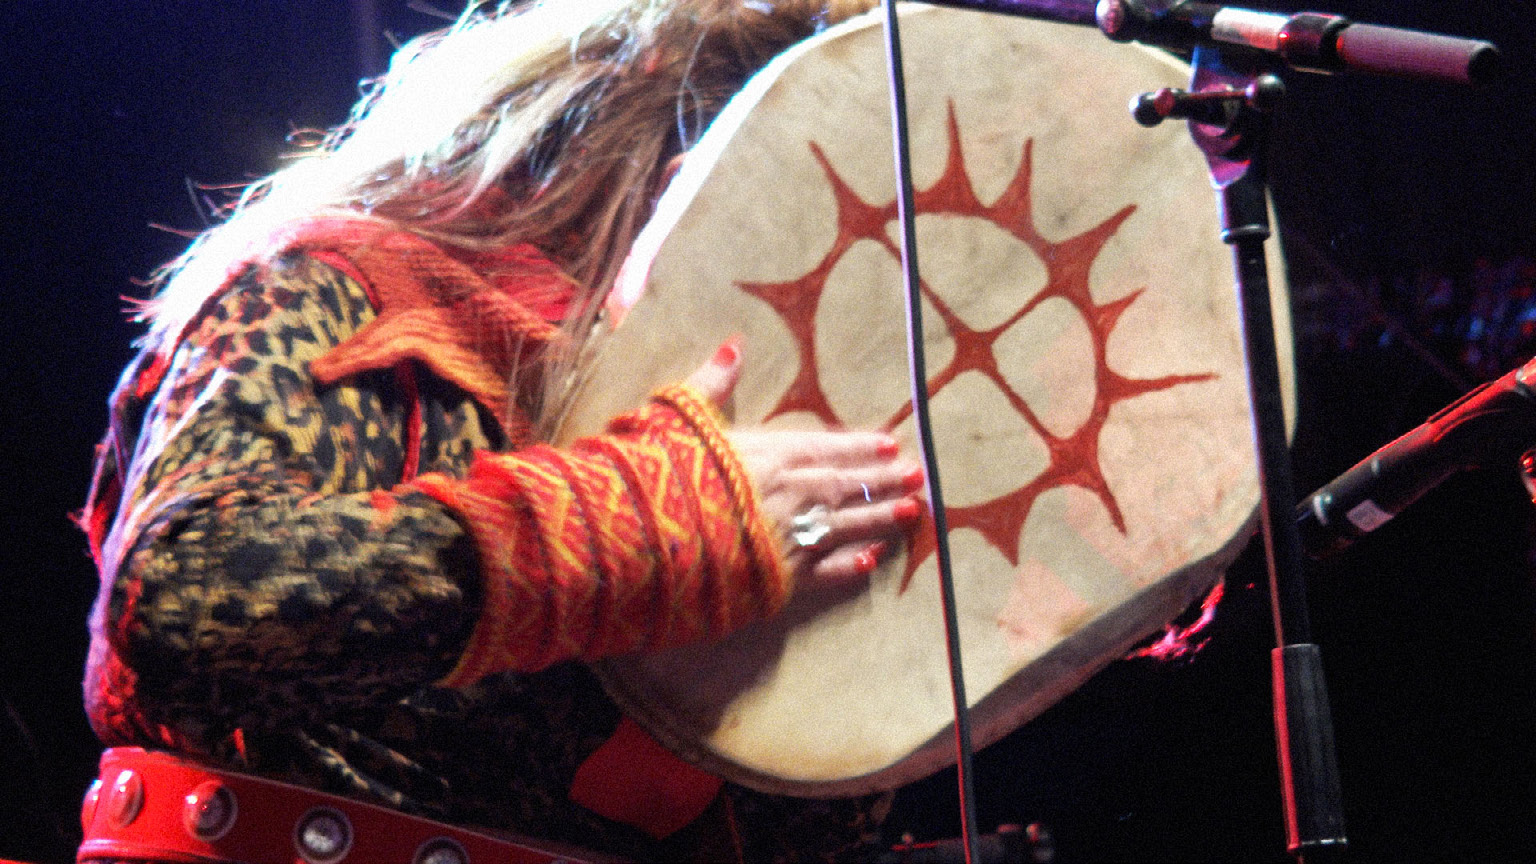 FIGURE 10. Mari Boine's drum and percussive style during the performance of Gula Gula at the Ijahis Idja festival (Inari, 16th August 2019, frame from Video example 2).